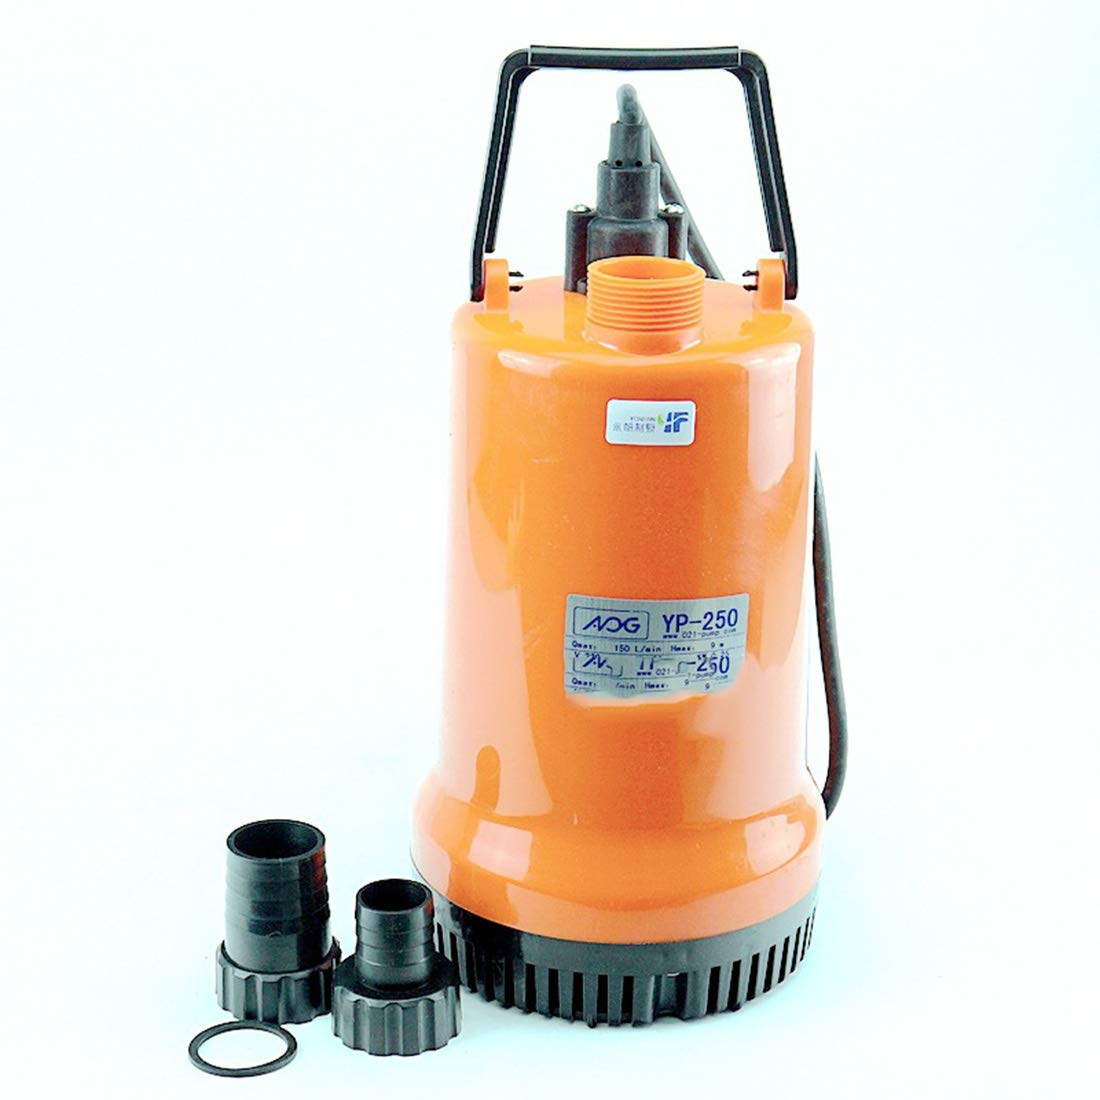 400w TDD Submersible Water Pump Fountain Water Pump For Aquarium Tabletop Fountains Pond Water Gardens And Hydroponic